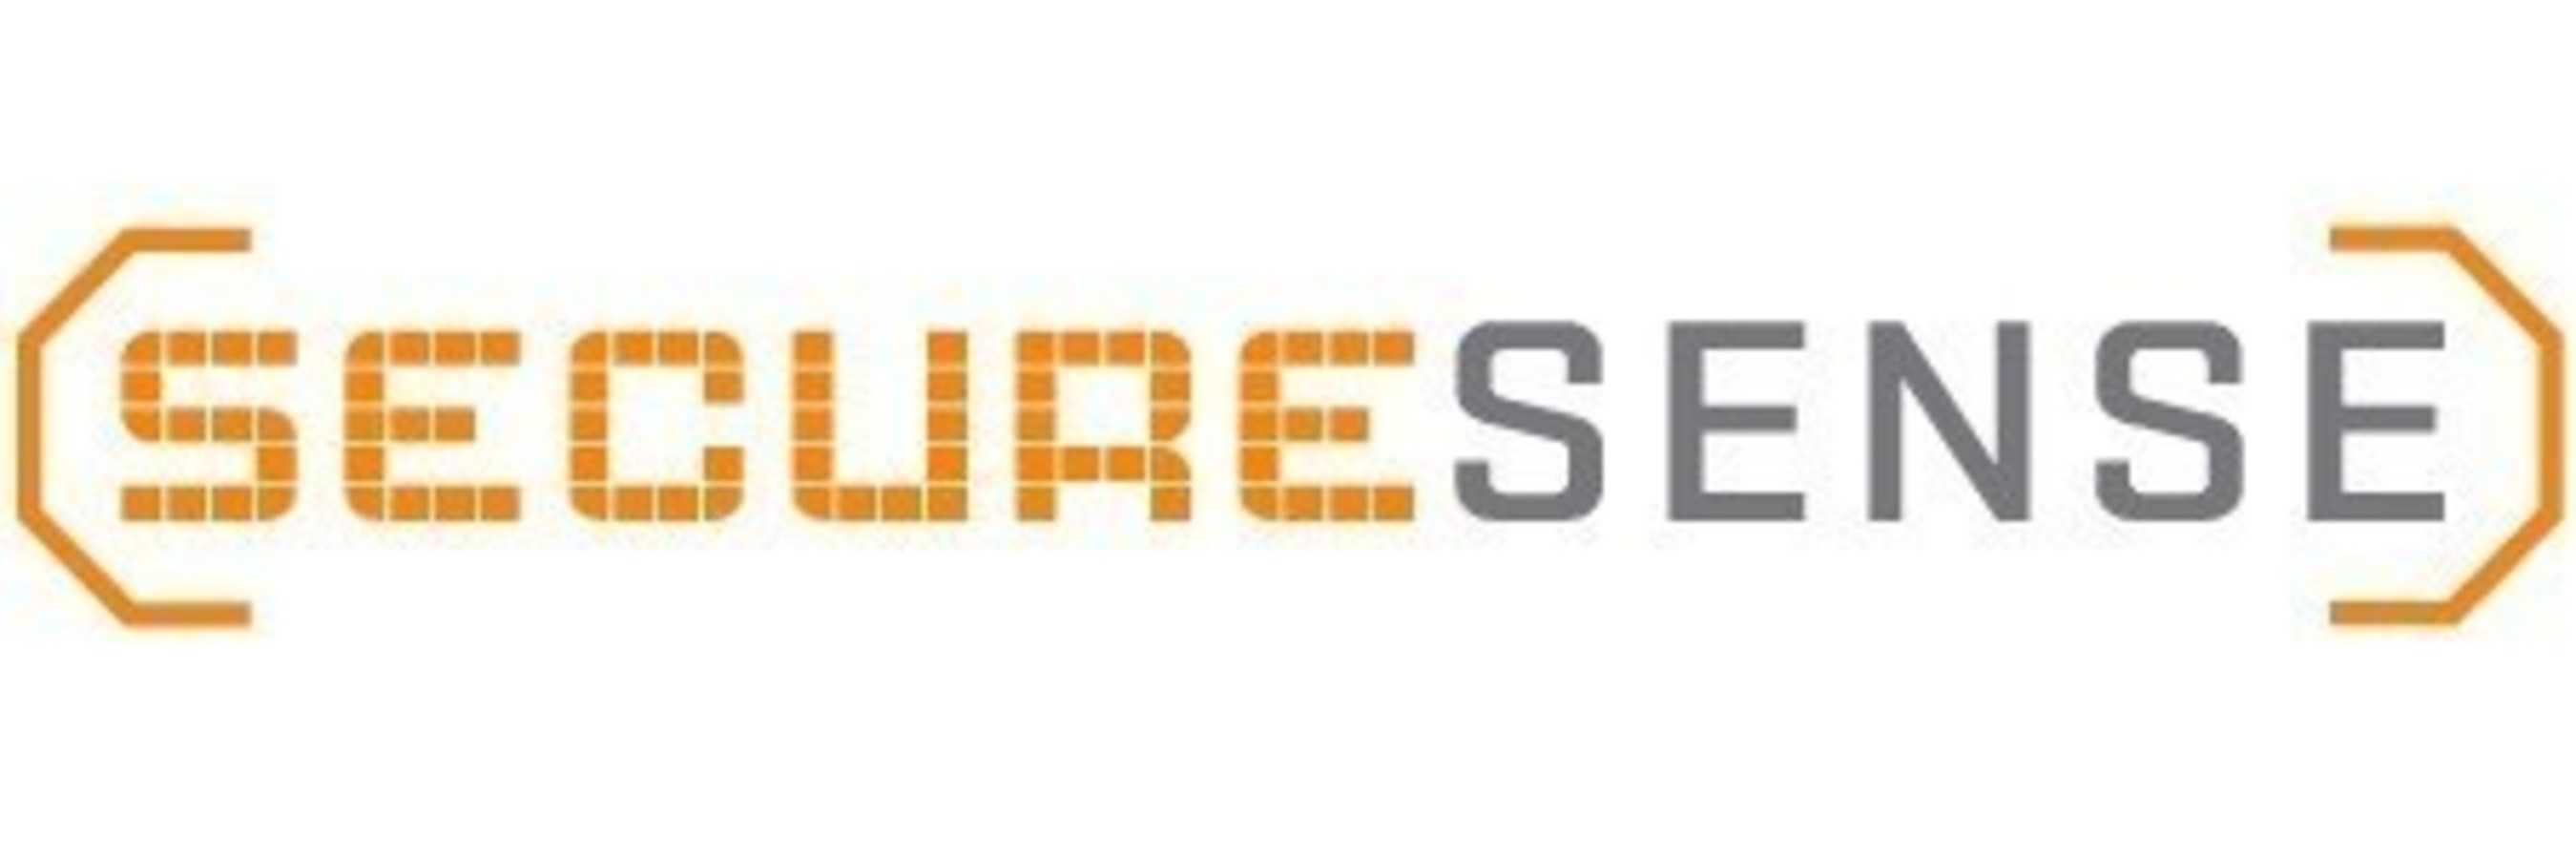 Secure Sense Ranks No. 13 on the 2016 PROFIT 500 Fastest-Growing Companies List